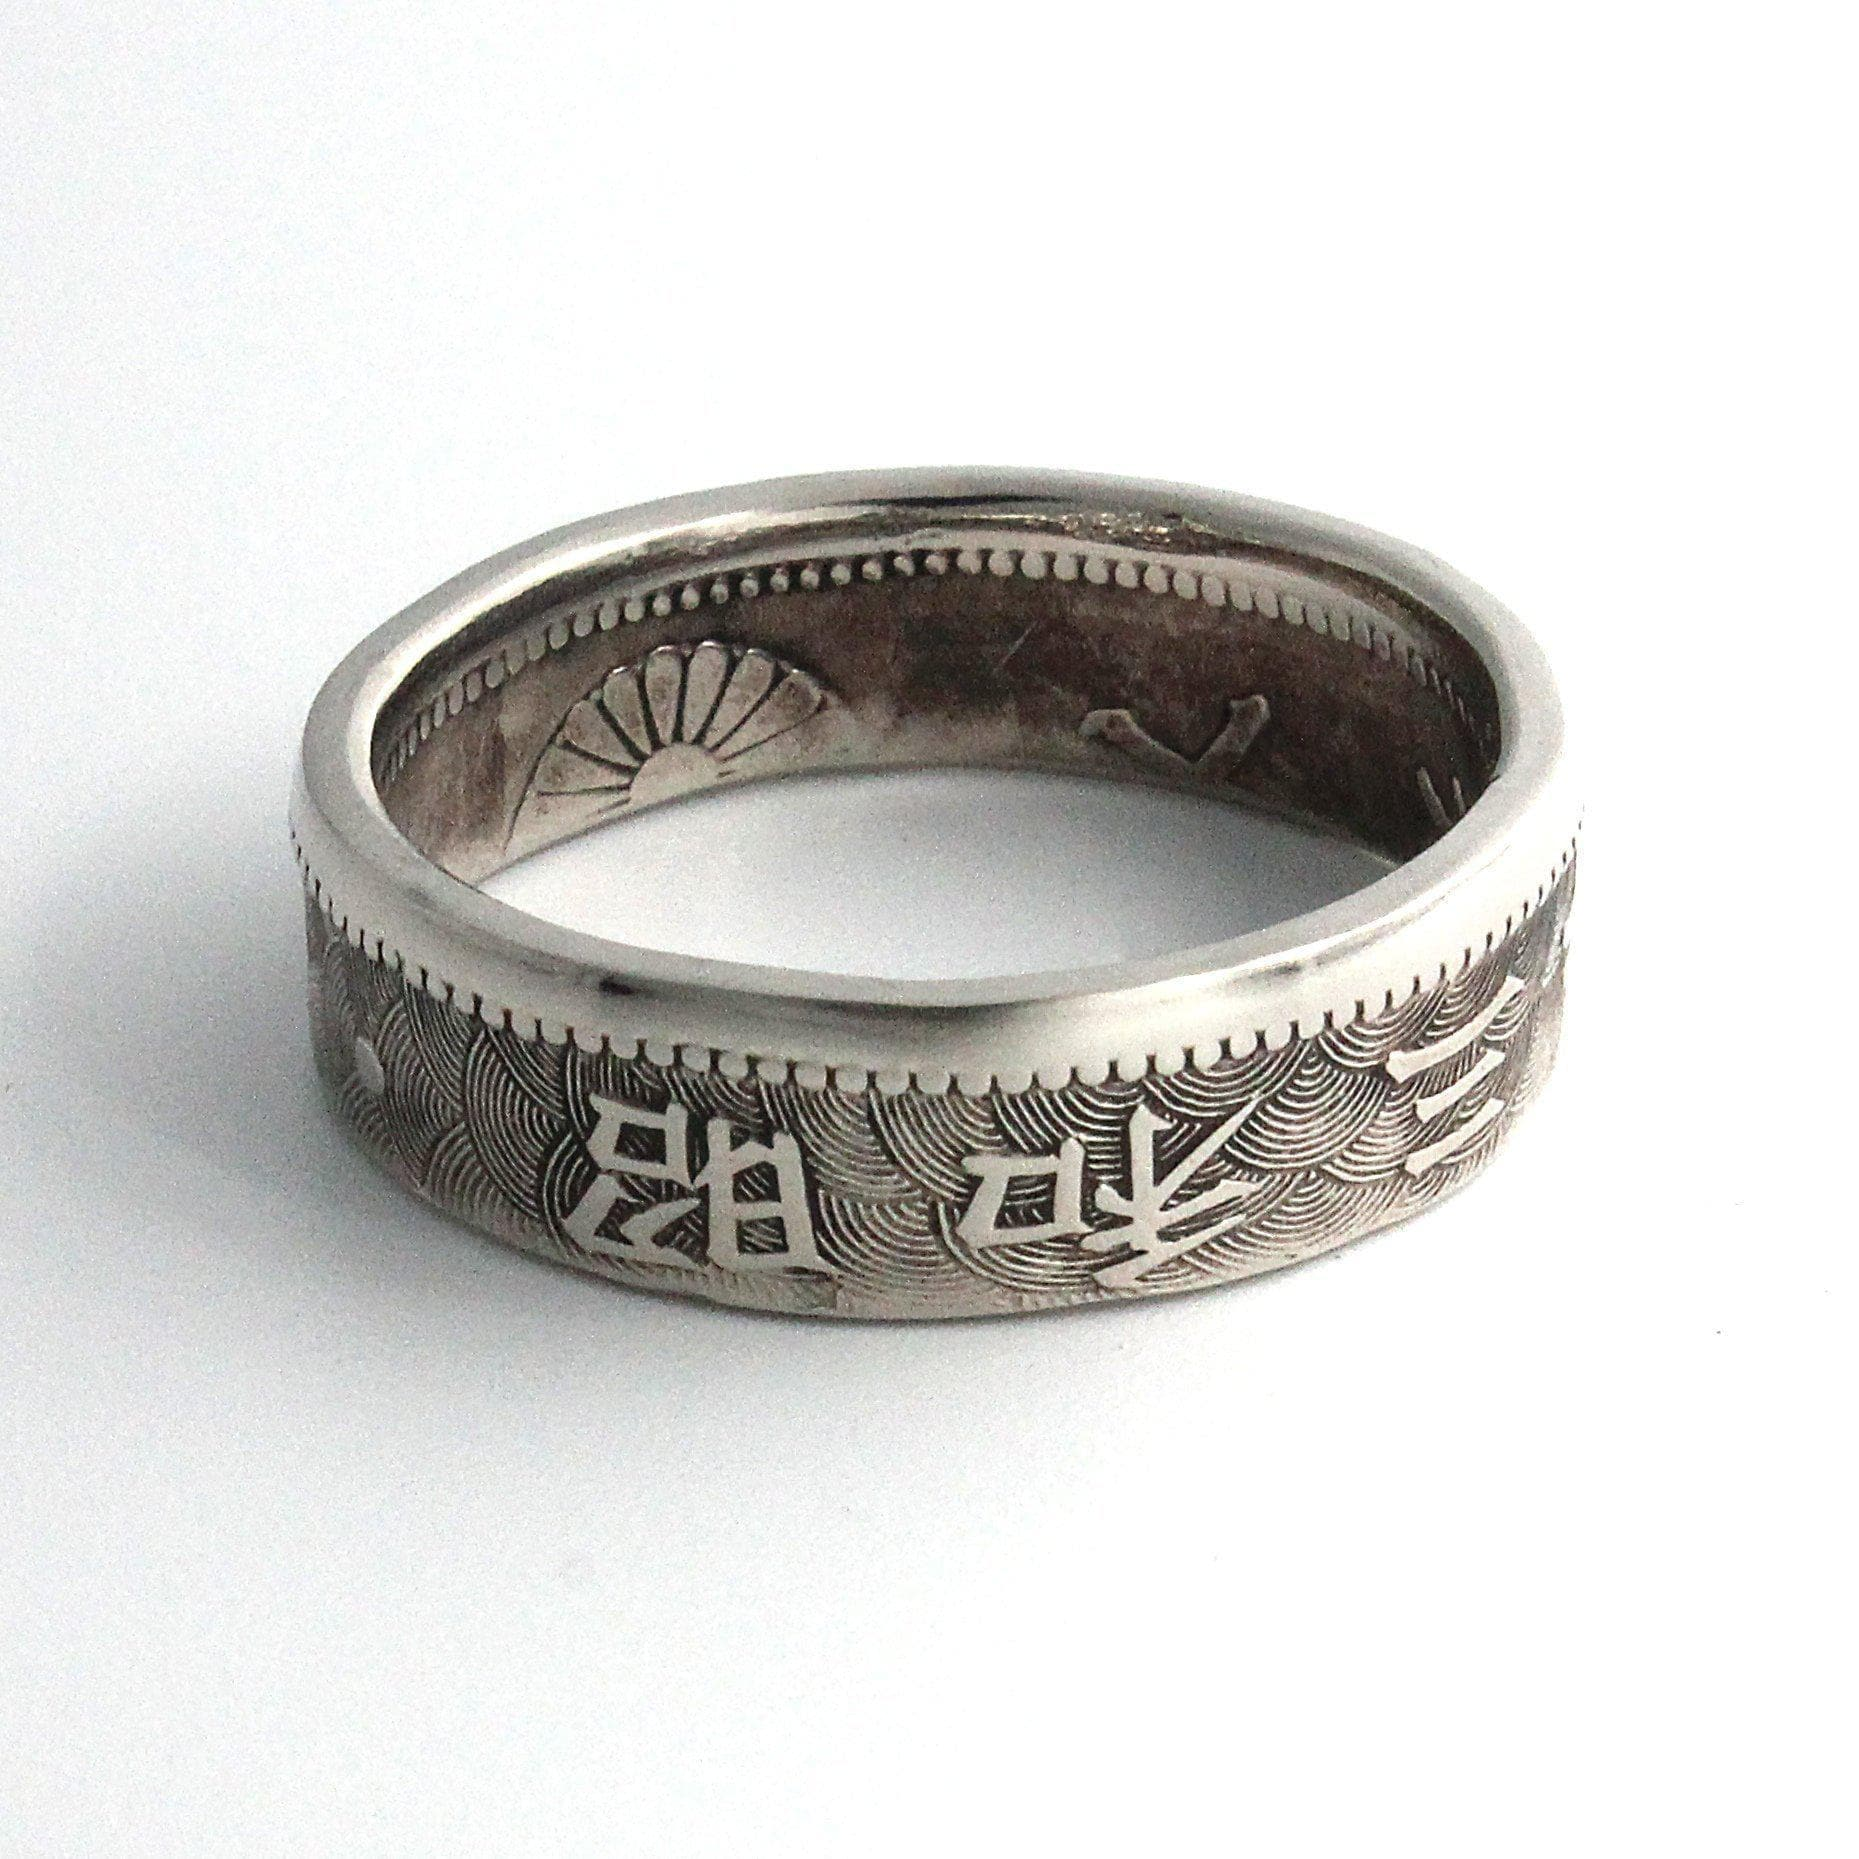 Feudal Japan Elegant Antique Coin Ring Ancient Treasures Ancientreasures Viking Odin Thor Mjolnir Celtic Ancient Egypt Norse Norse Mythology